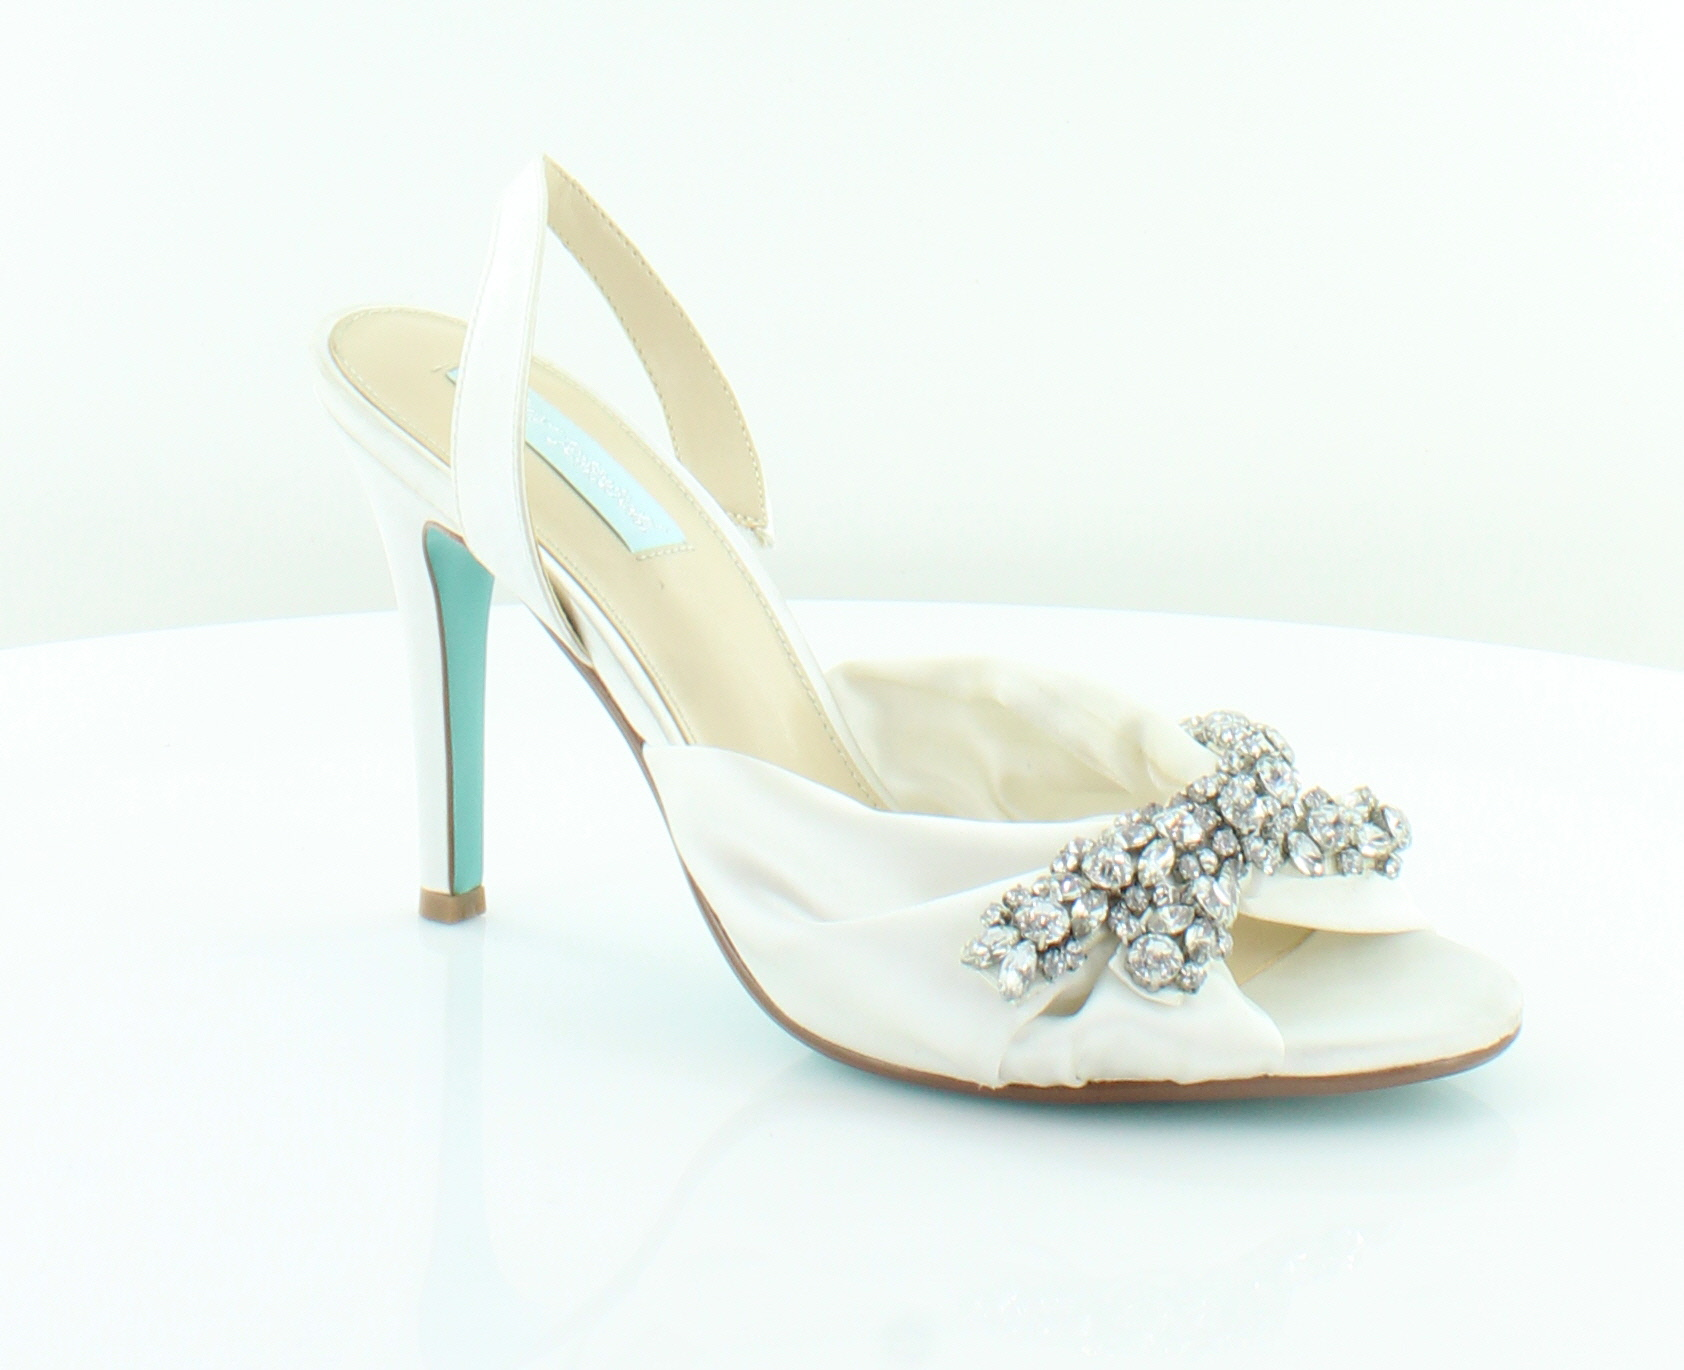 Betsey Johnson Briel Ivory femmes chaussures Taille 8.5 M Heels MSRP  119